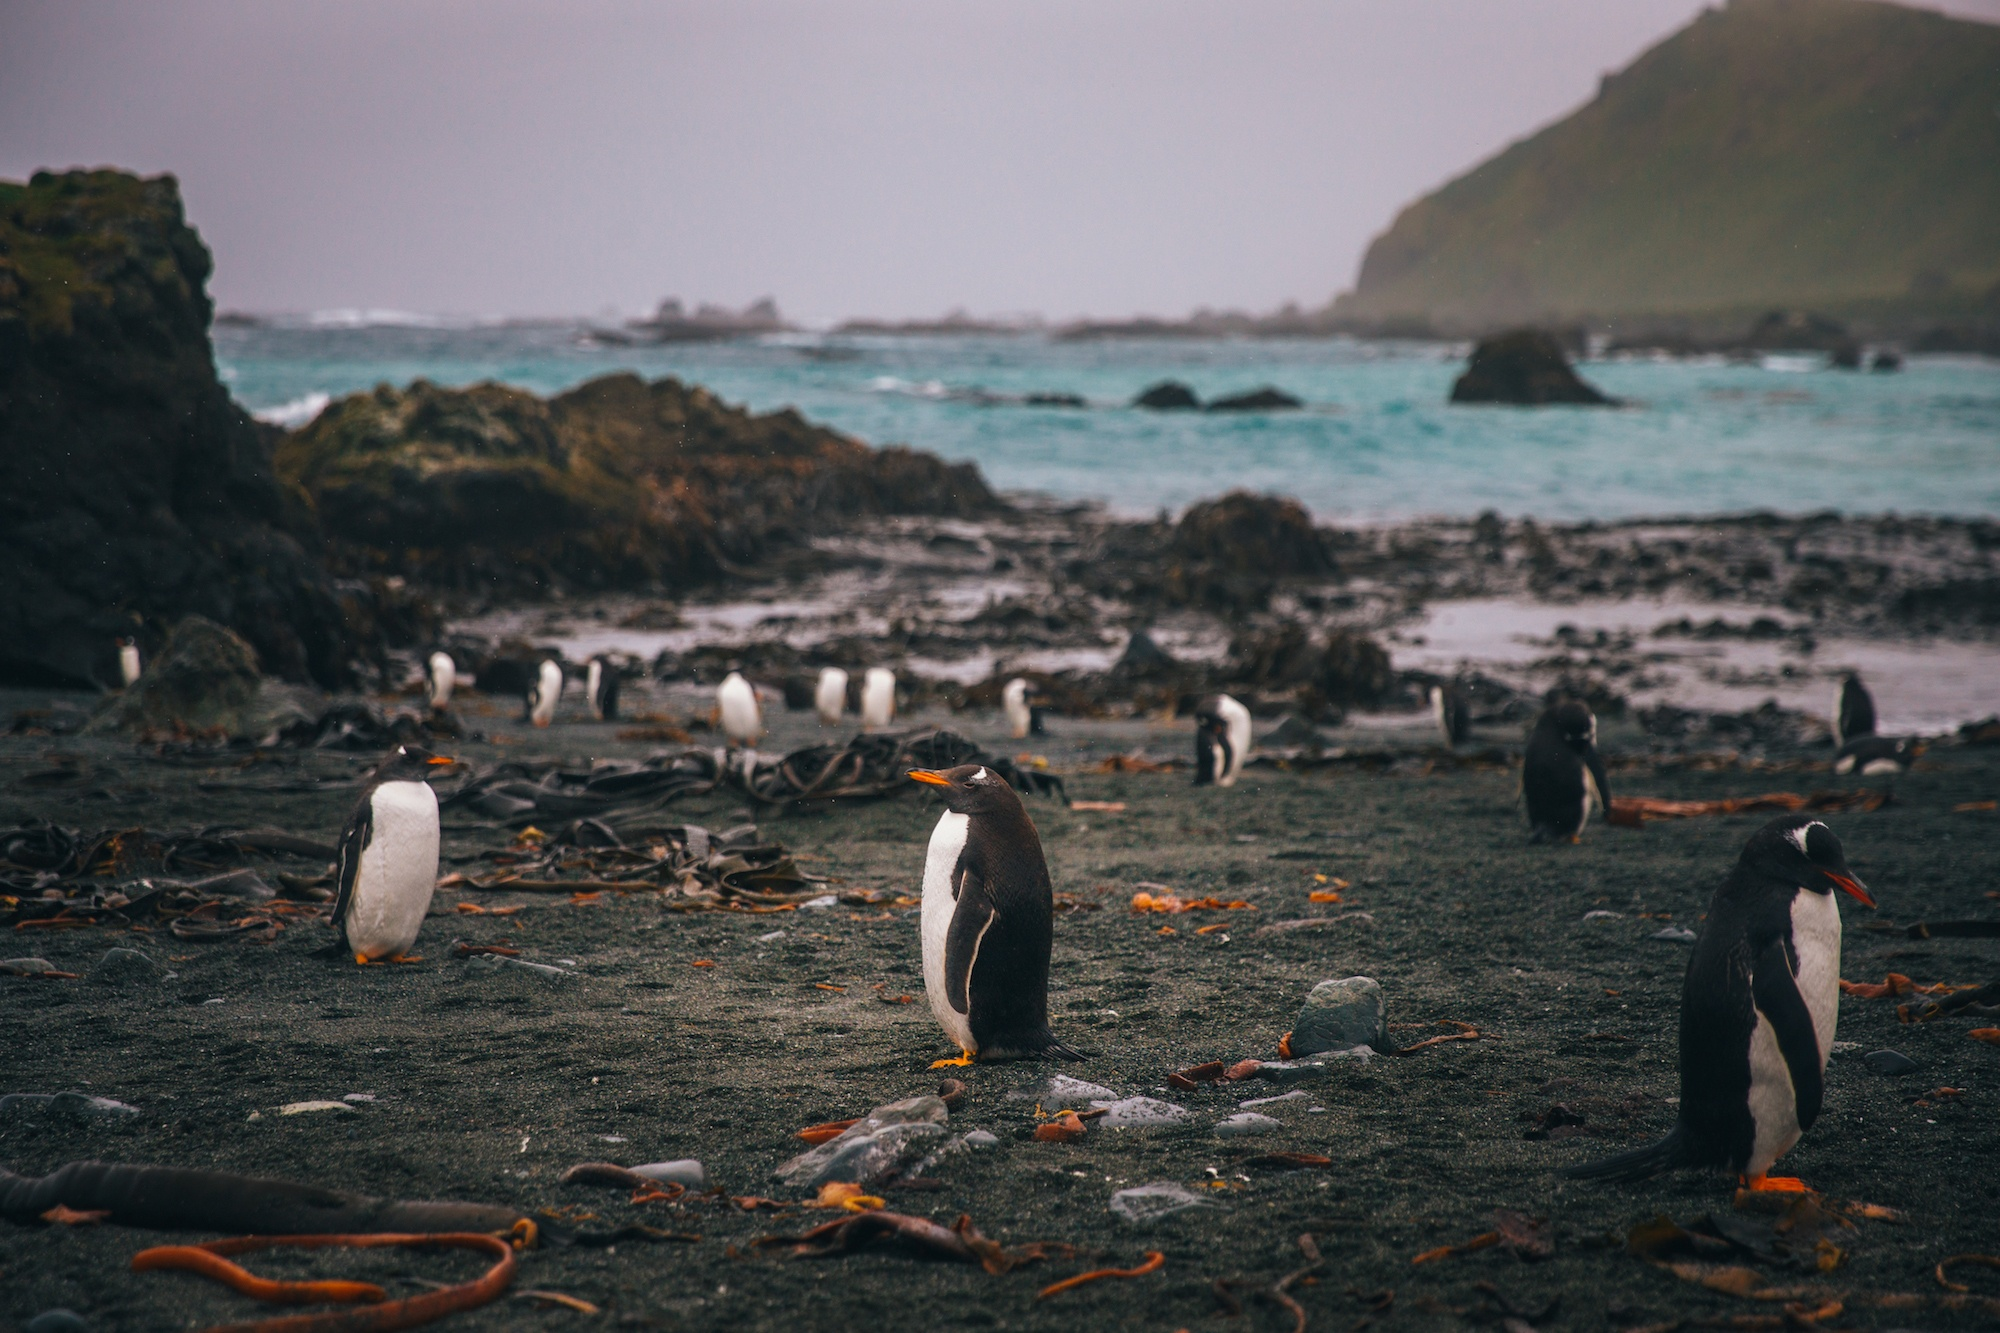 visit Macquarie island